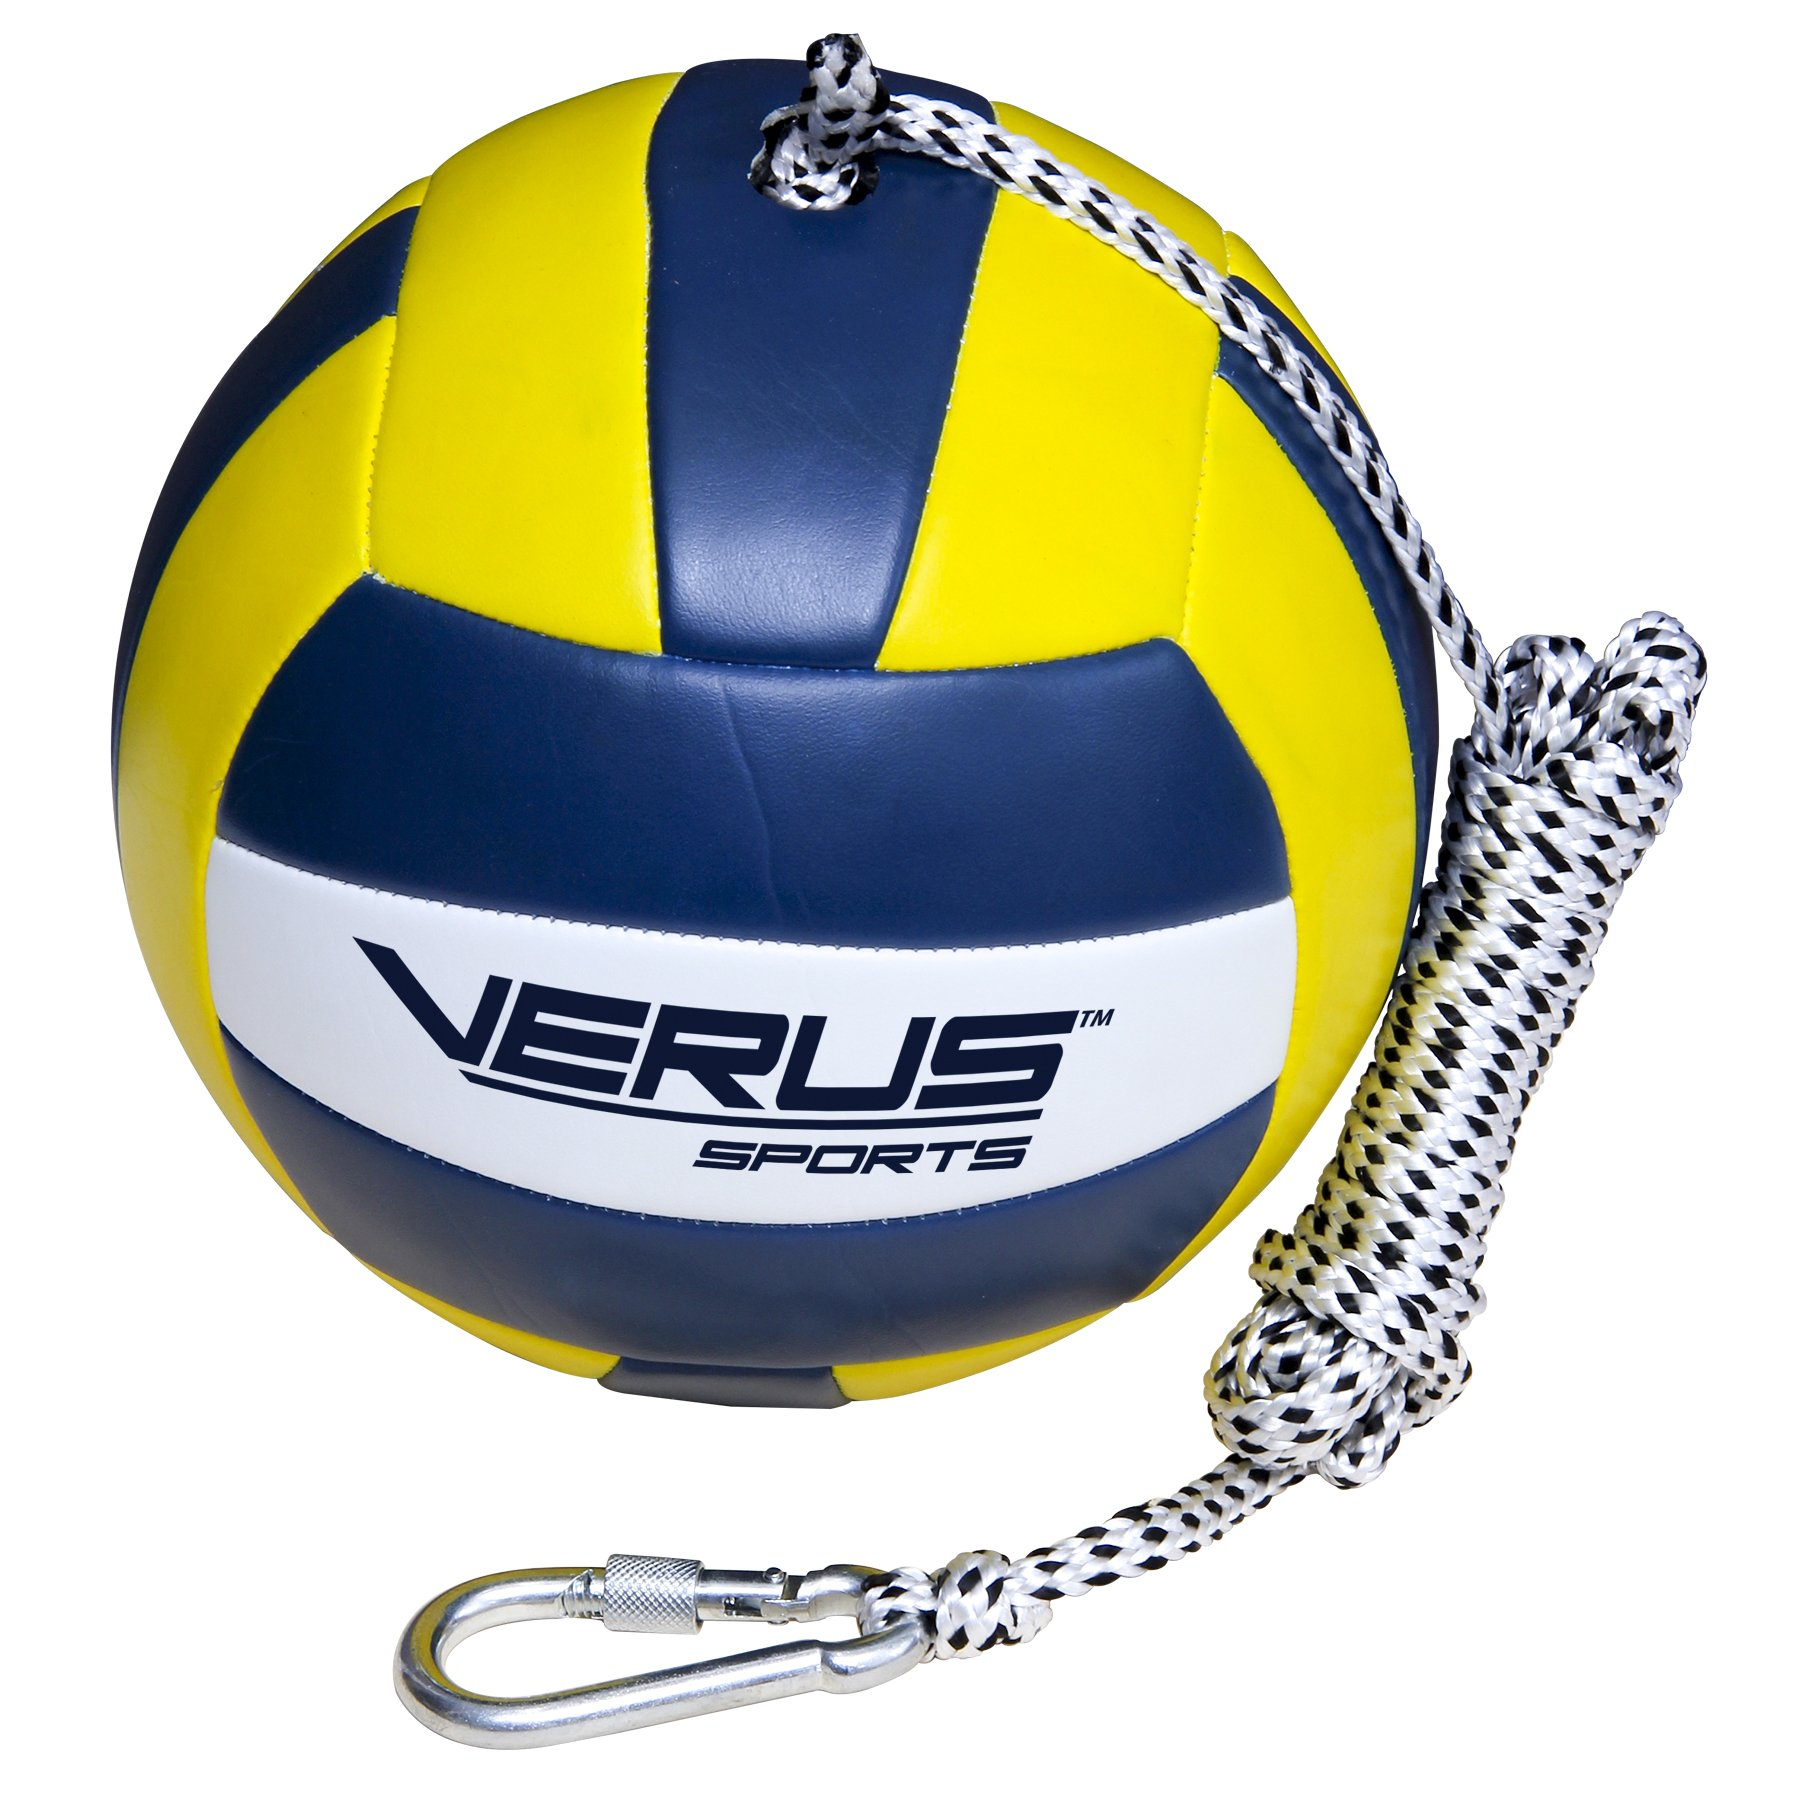 Verus Sports Replacement Tetherball Ball with Heavy Duty Rope & Clip by Verus Sports